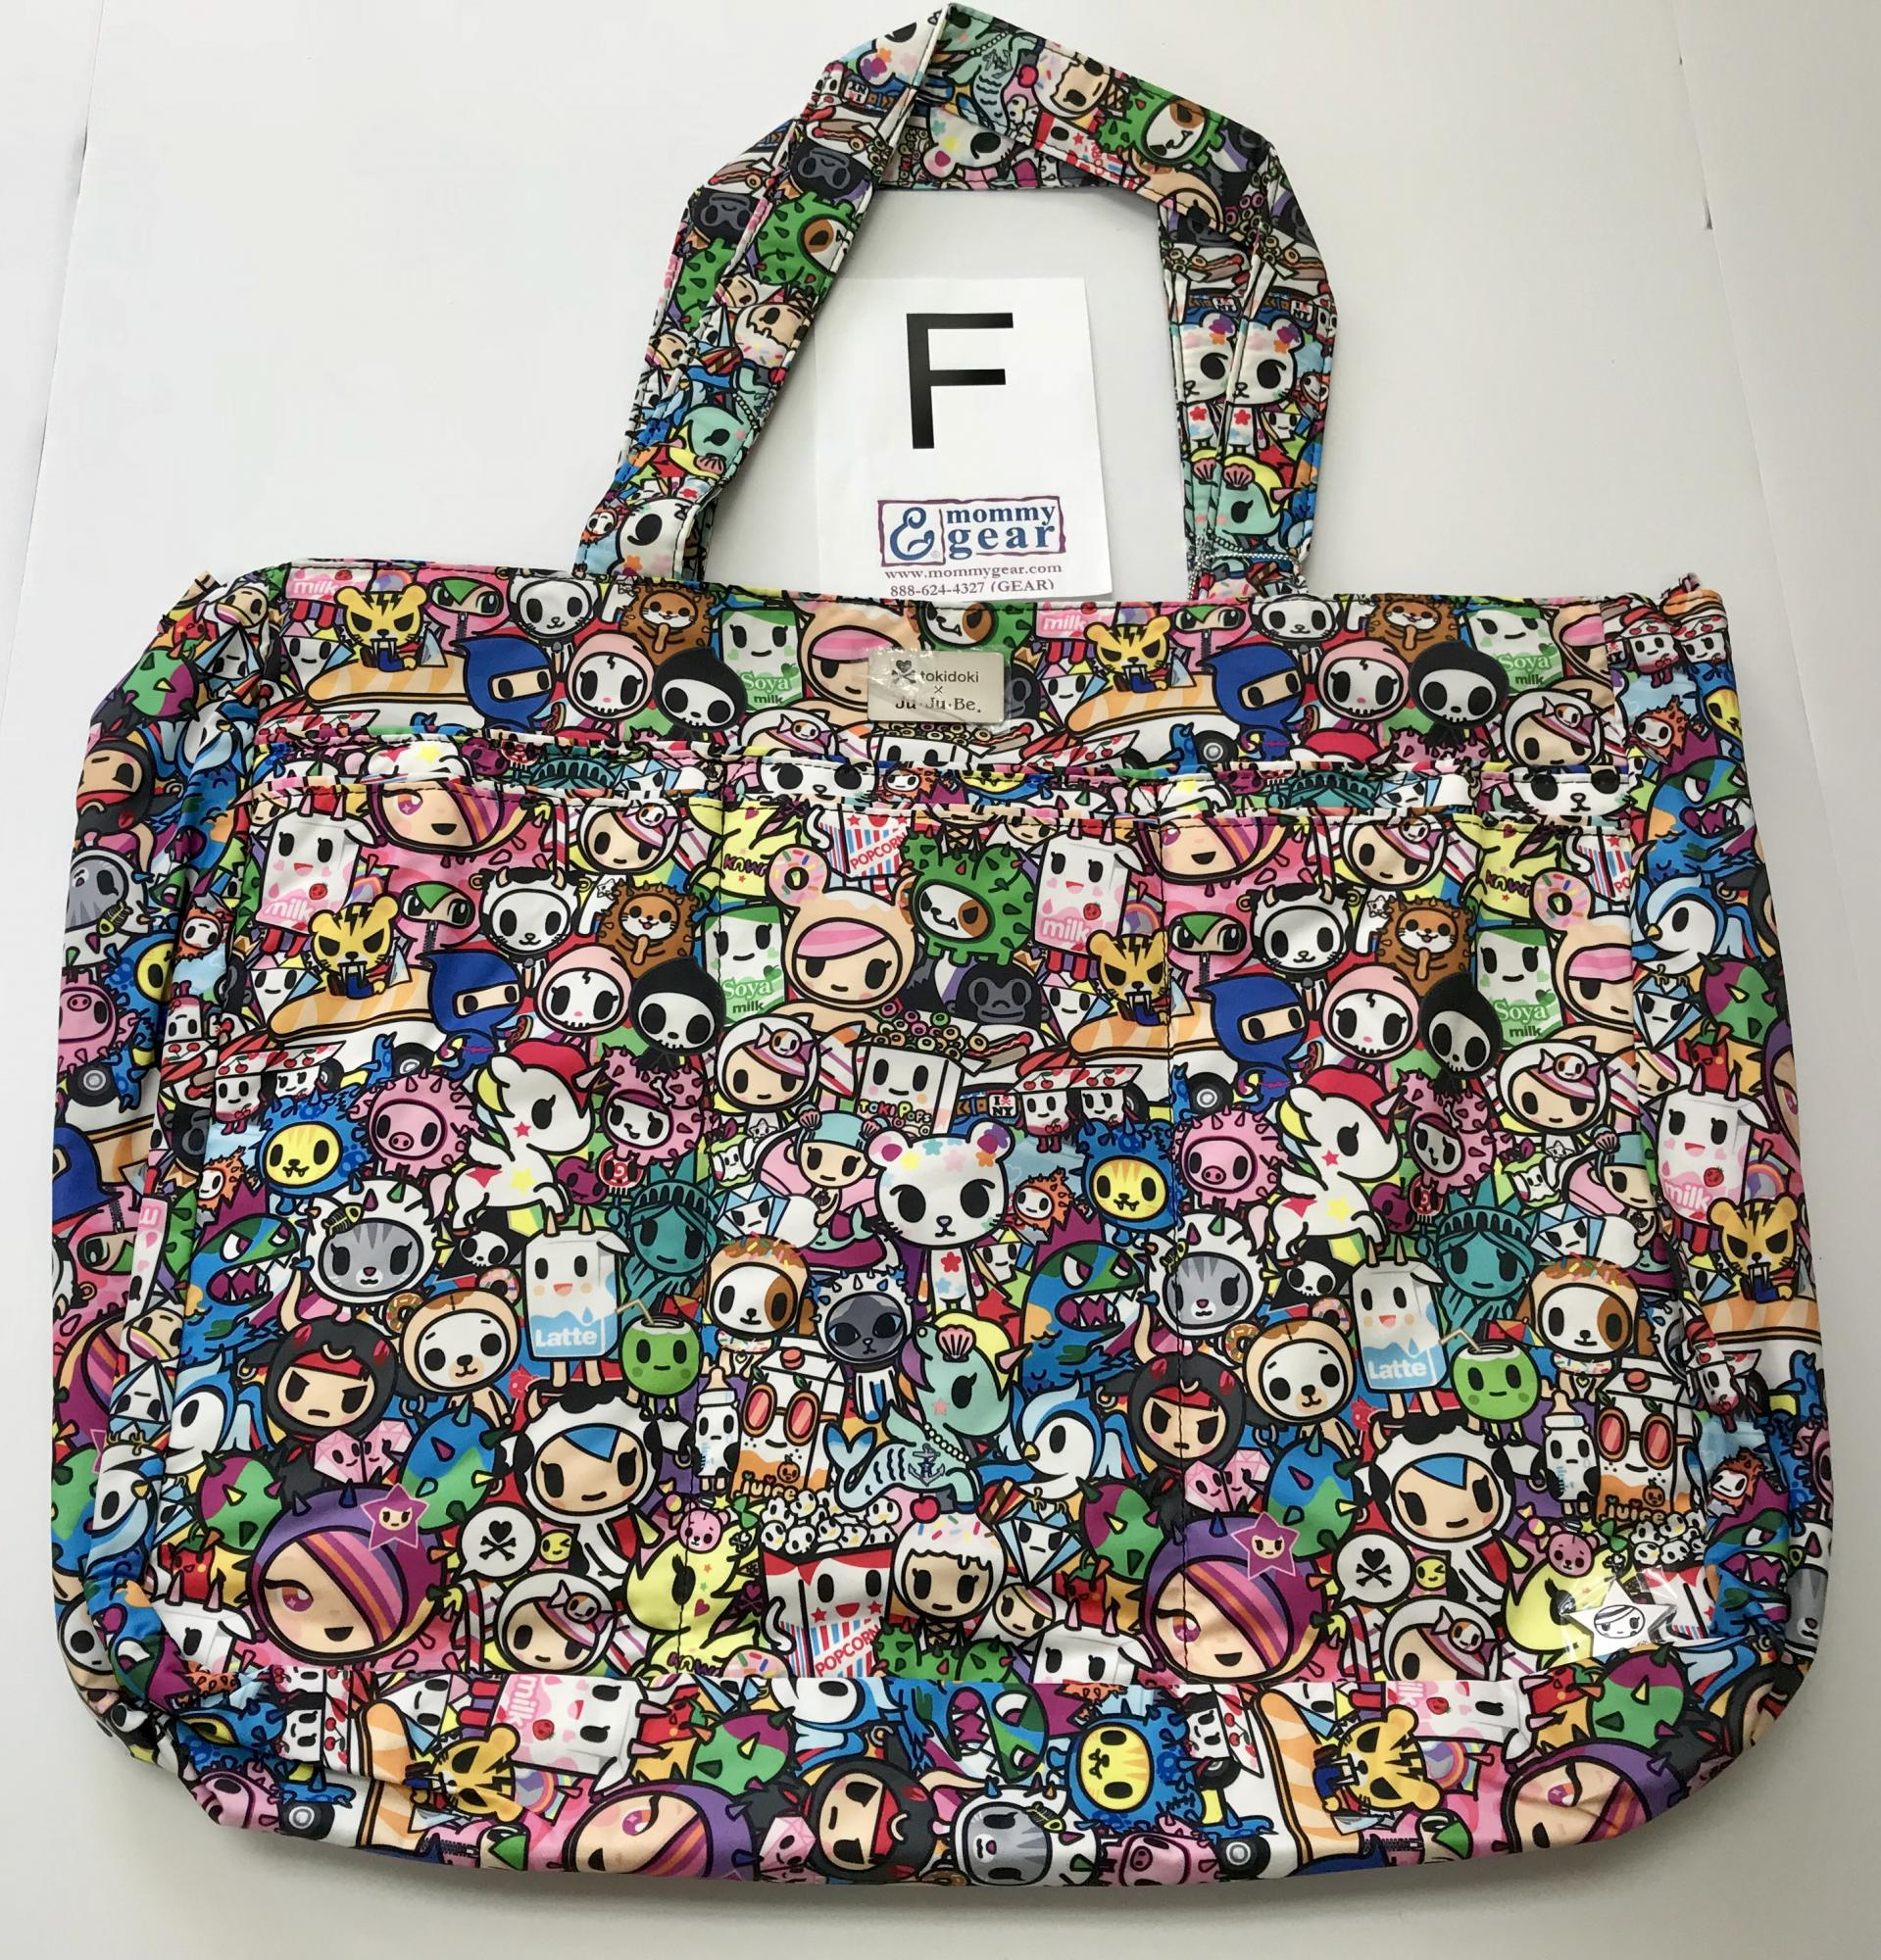 ju-ju-be-tokidoki-iconic-2.0-super-be-pp-f.jpg